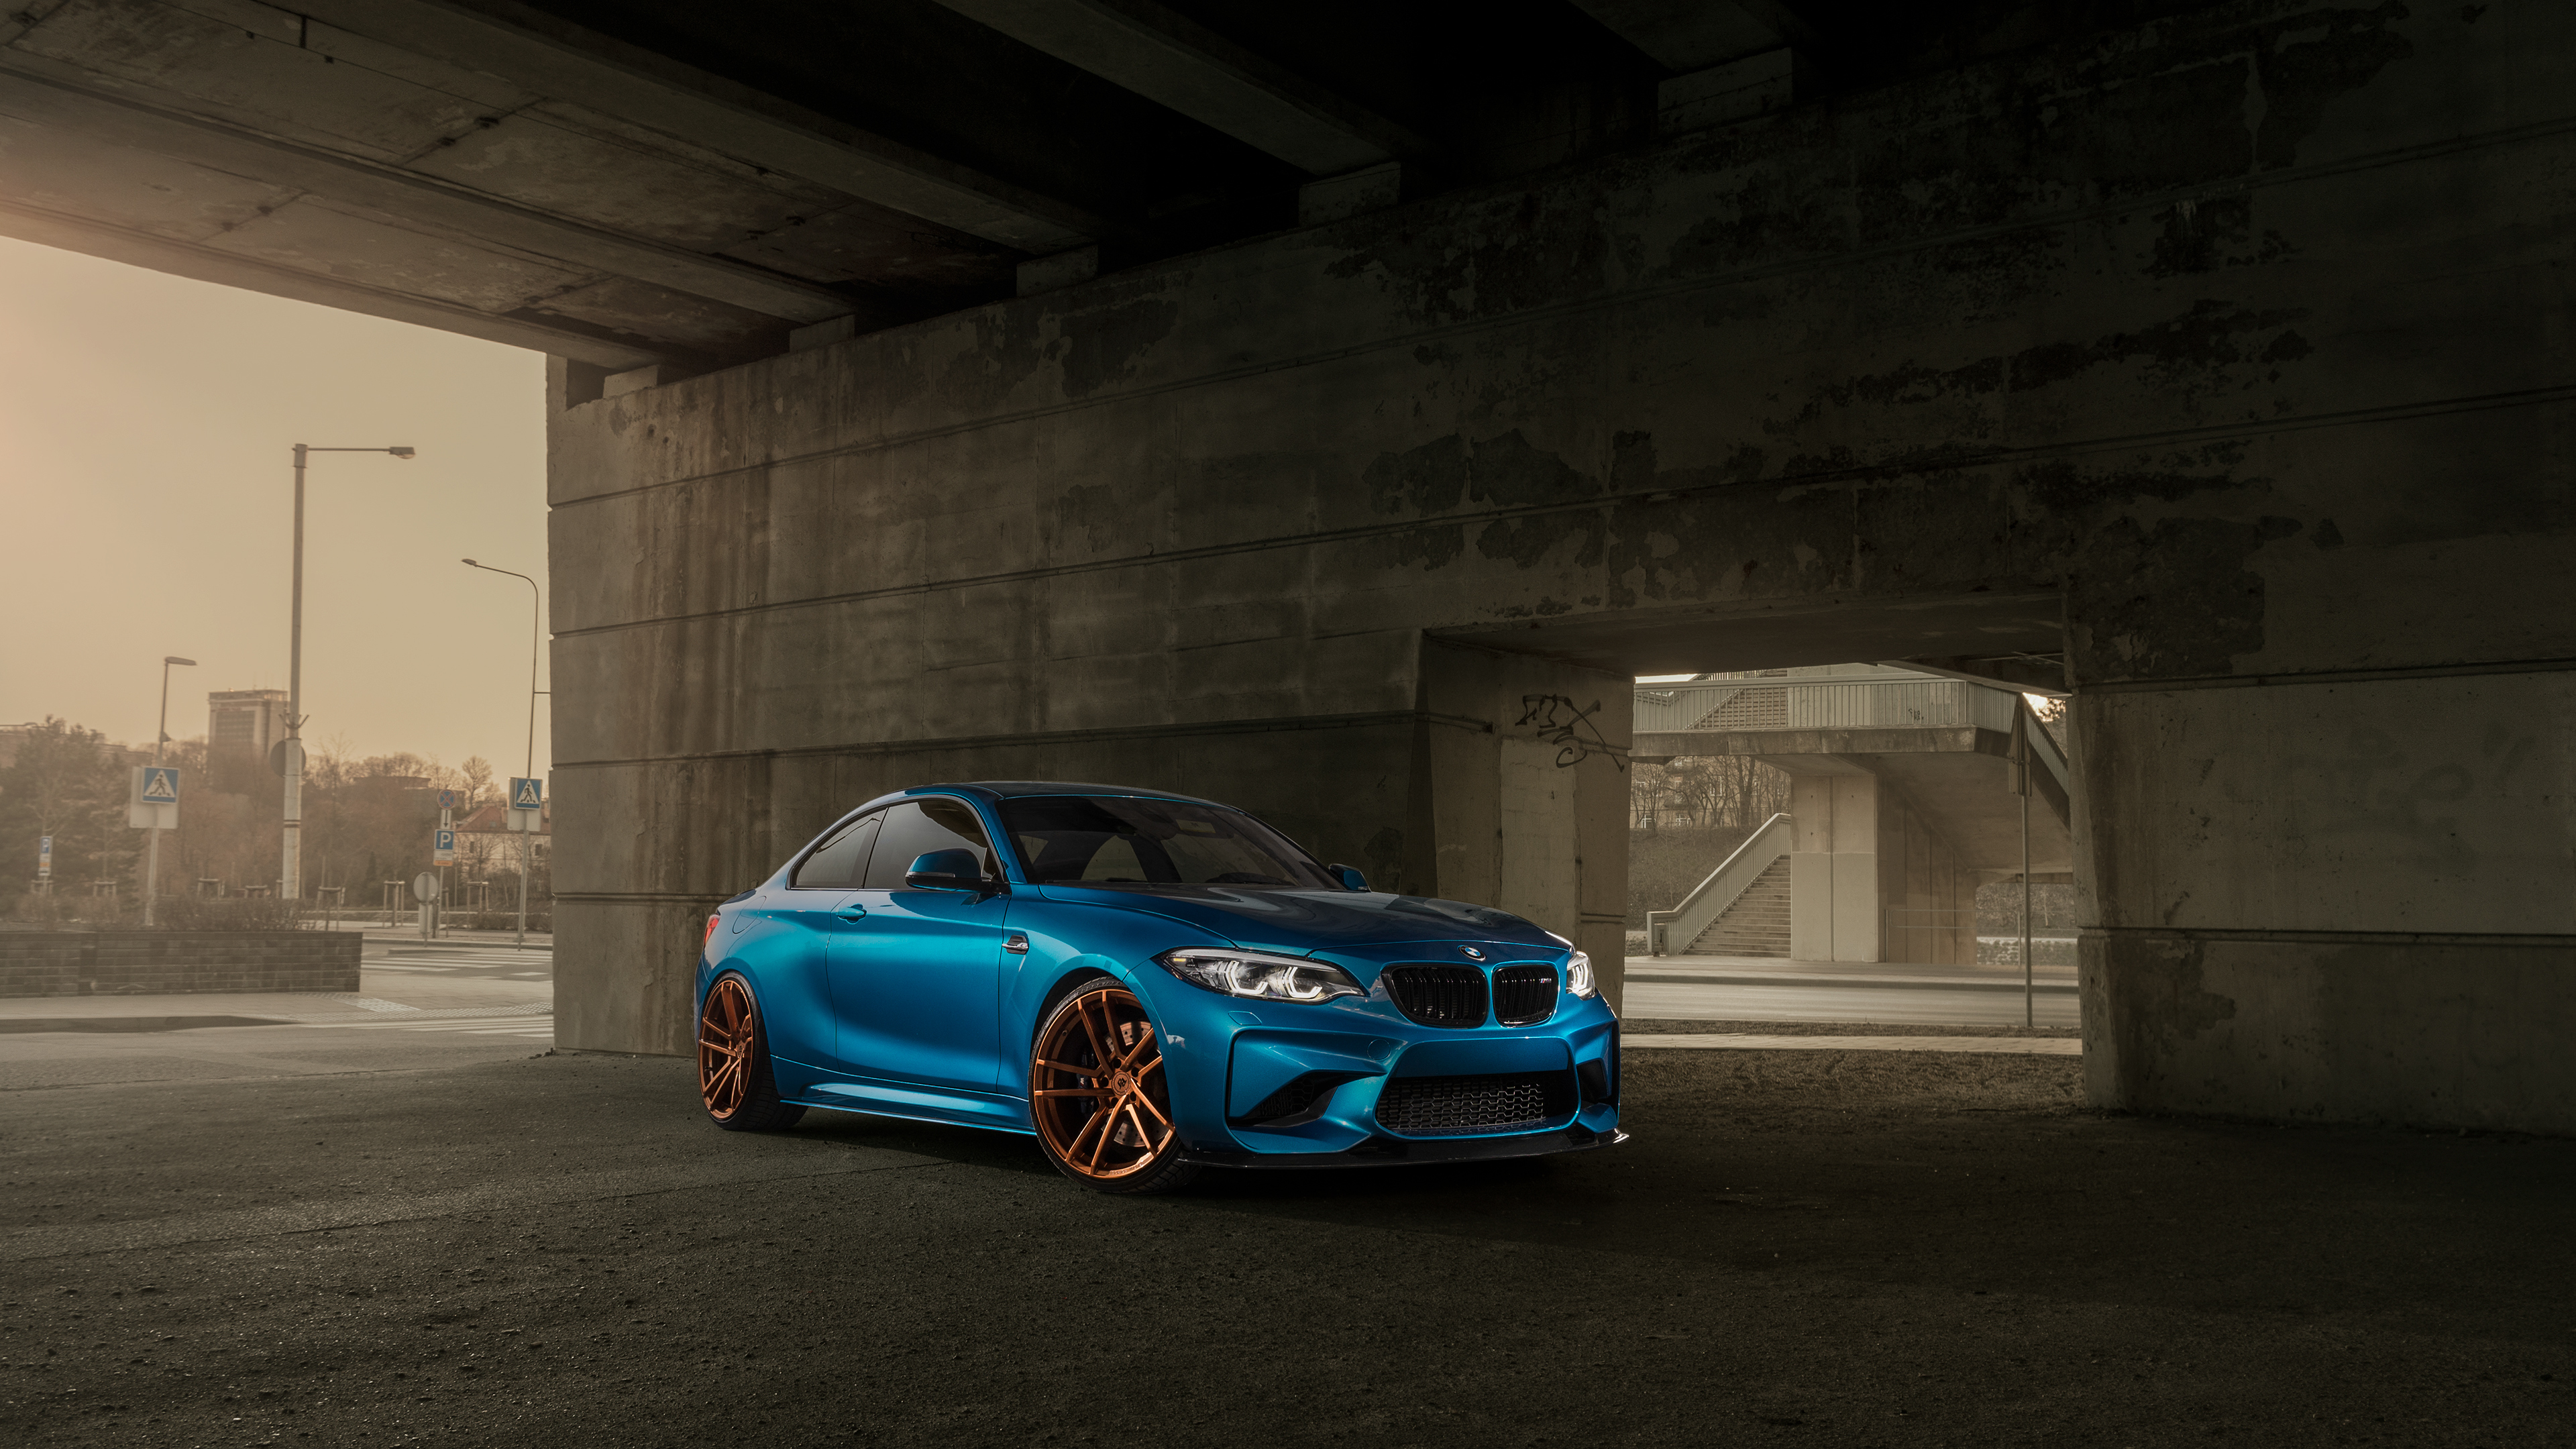 bmw m2 front 1562107622 - Bmw M2 Front - hd-wallpapers, cars wallpapers, bmw wallpapers, bmw m2 wallpapers, behance wallpapers, 4k-wallpapers